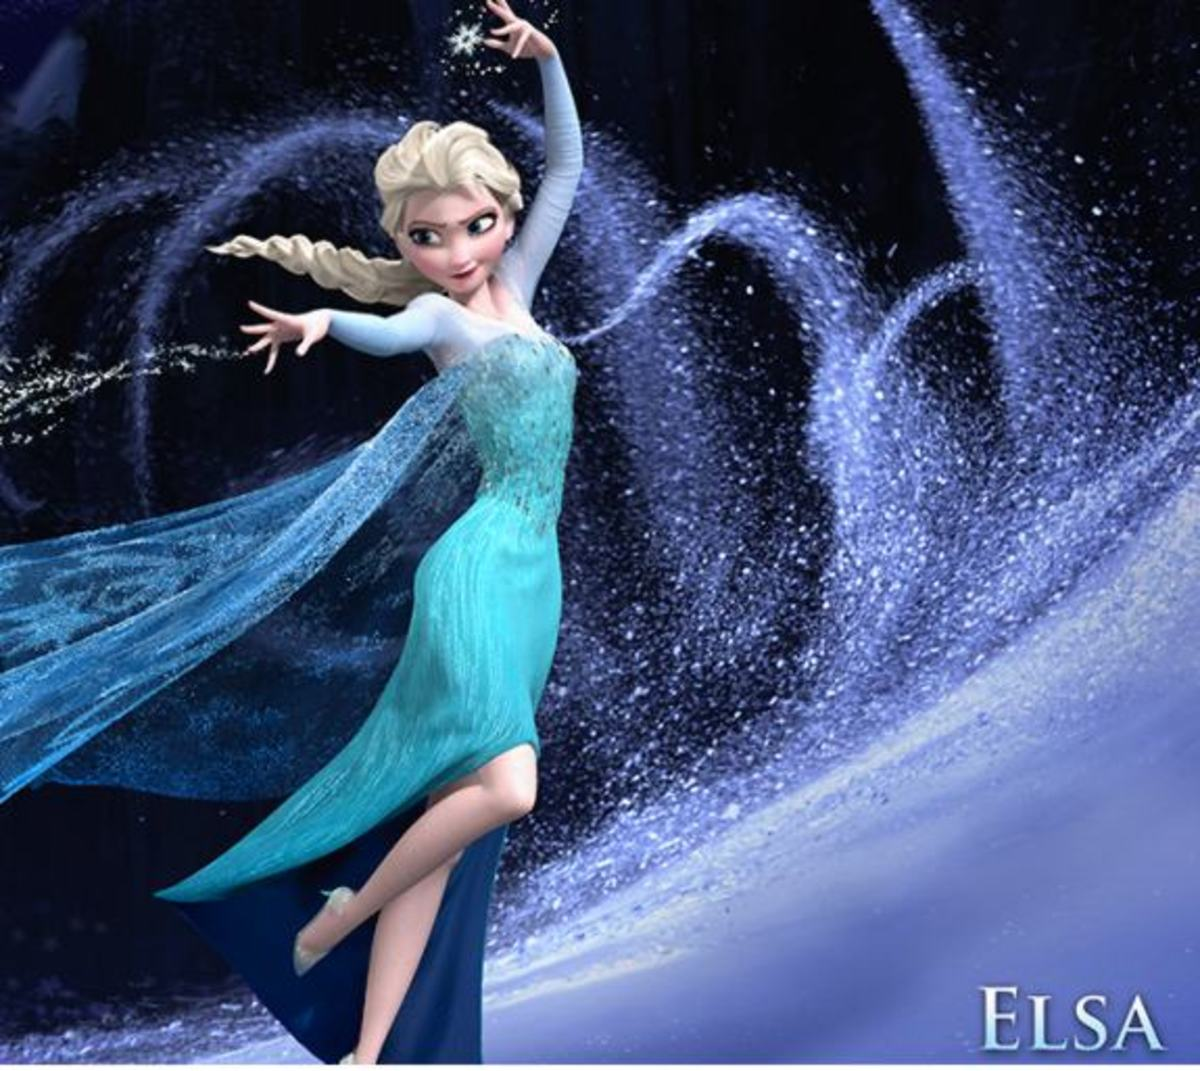 Image from Disney Frozen on Facebook